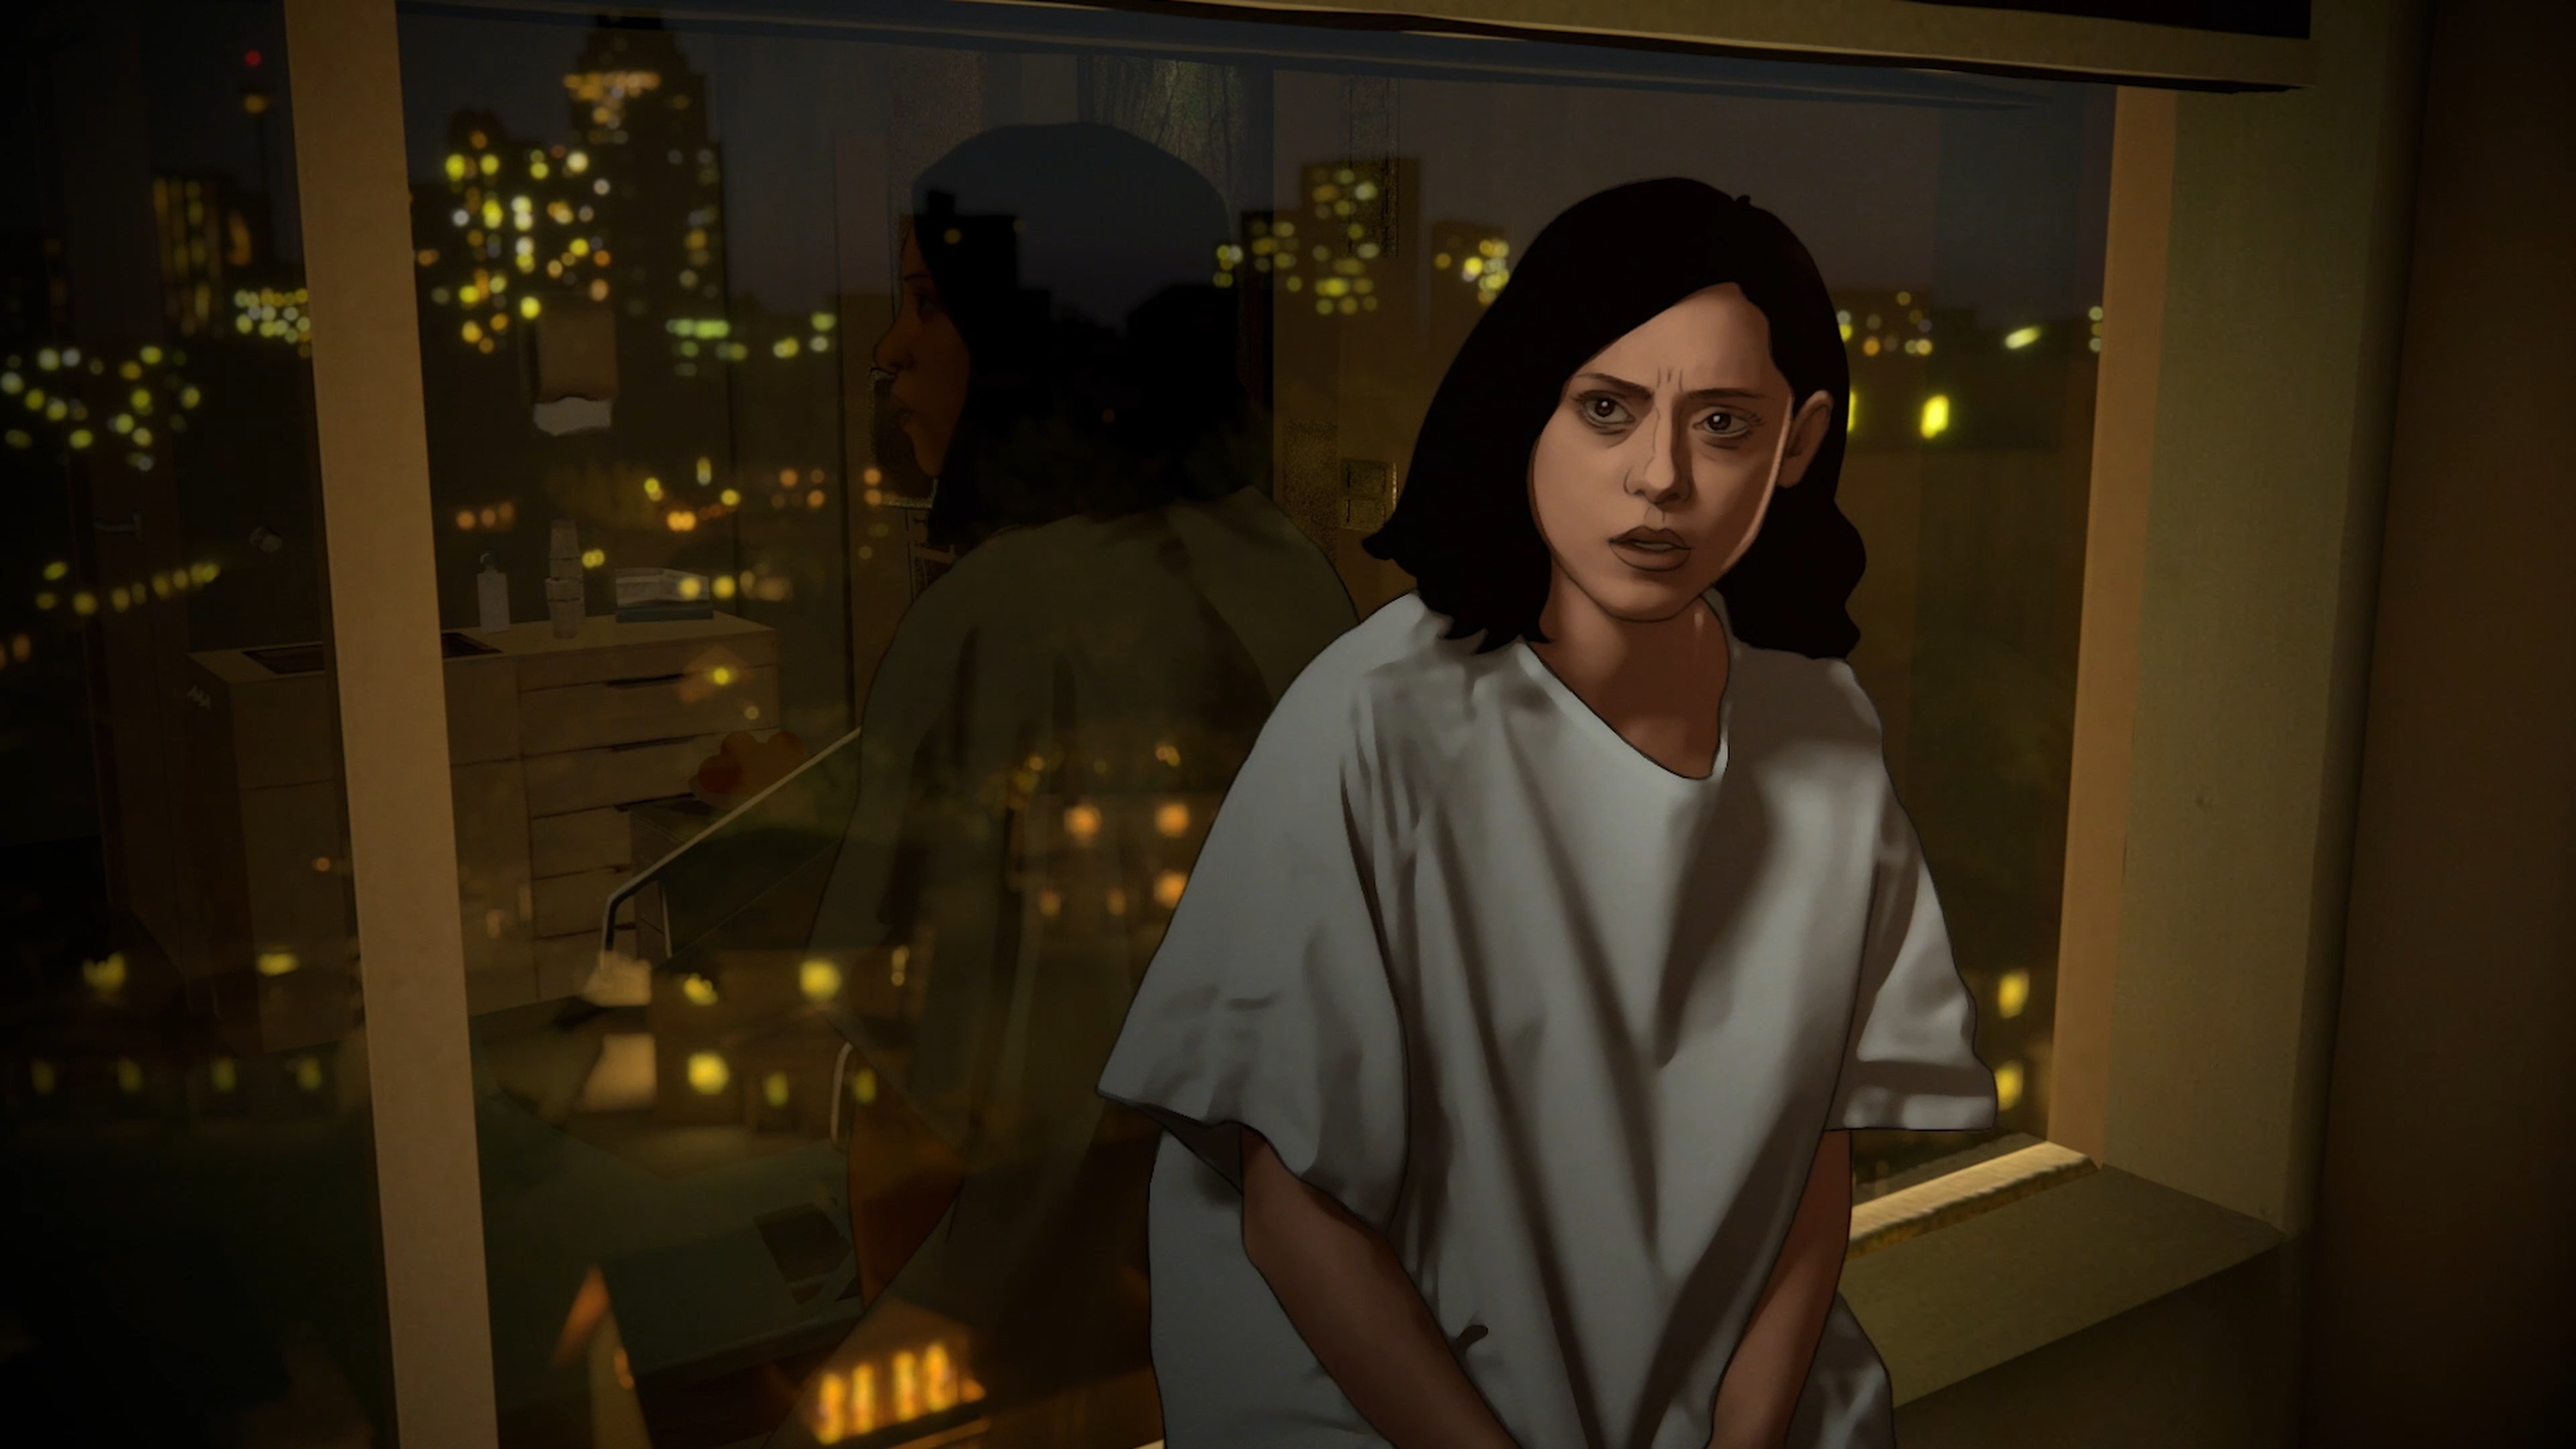 TRAILER: A Dimension-Jumping Latina Tries to Solve a Murder in Amazon Prime's Trippy Animated Series 'Undone'